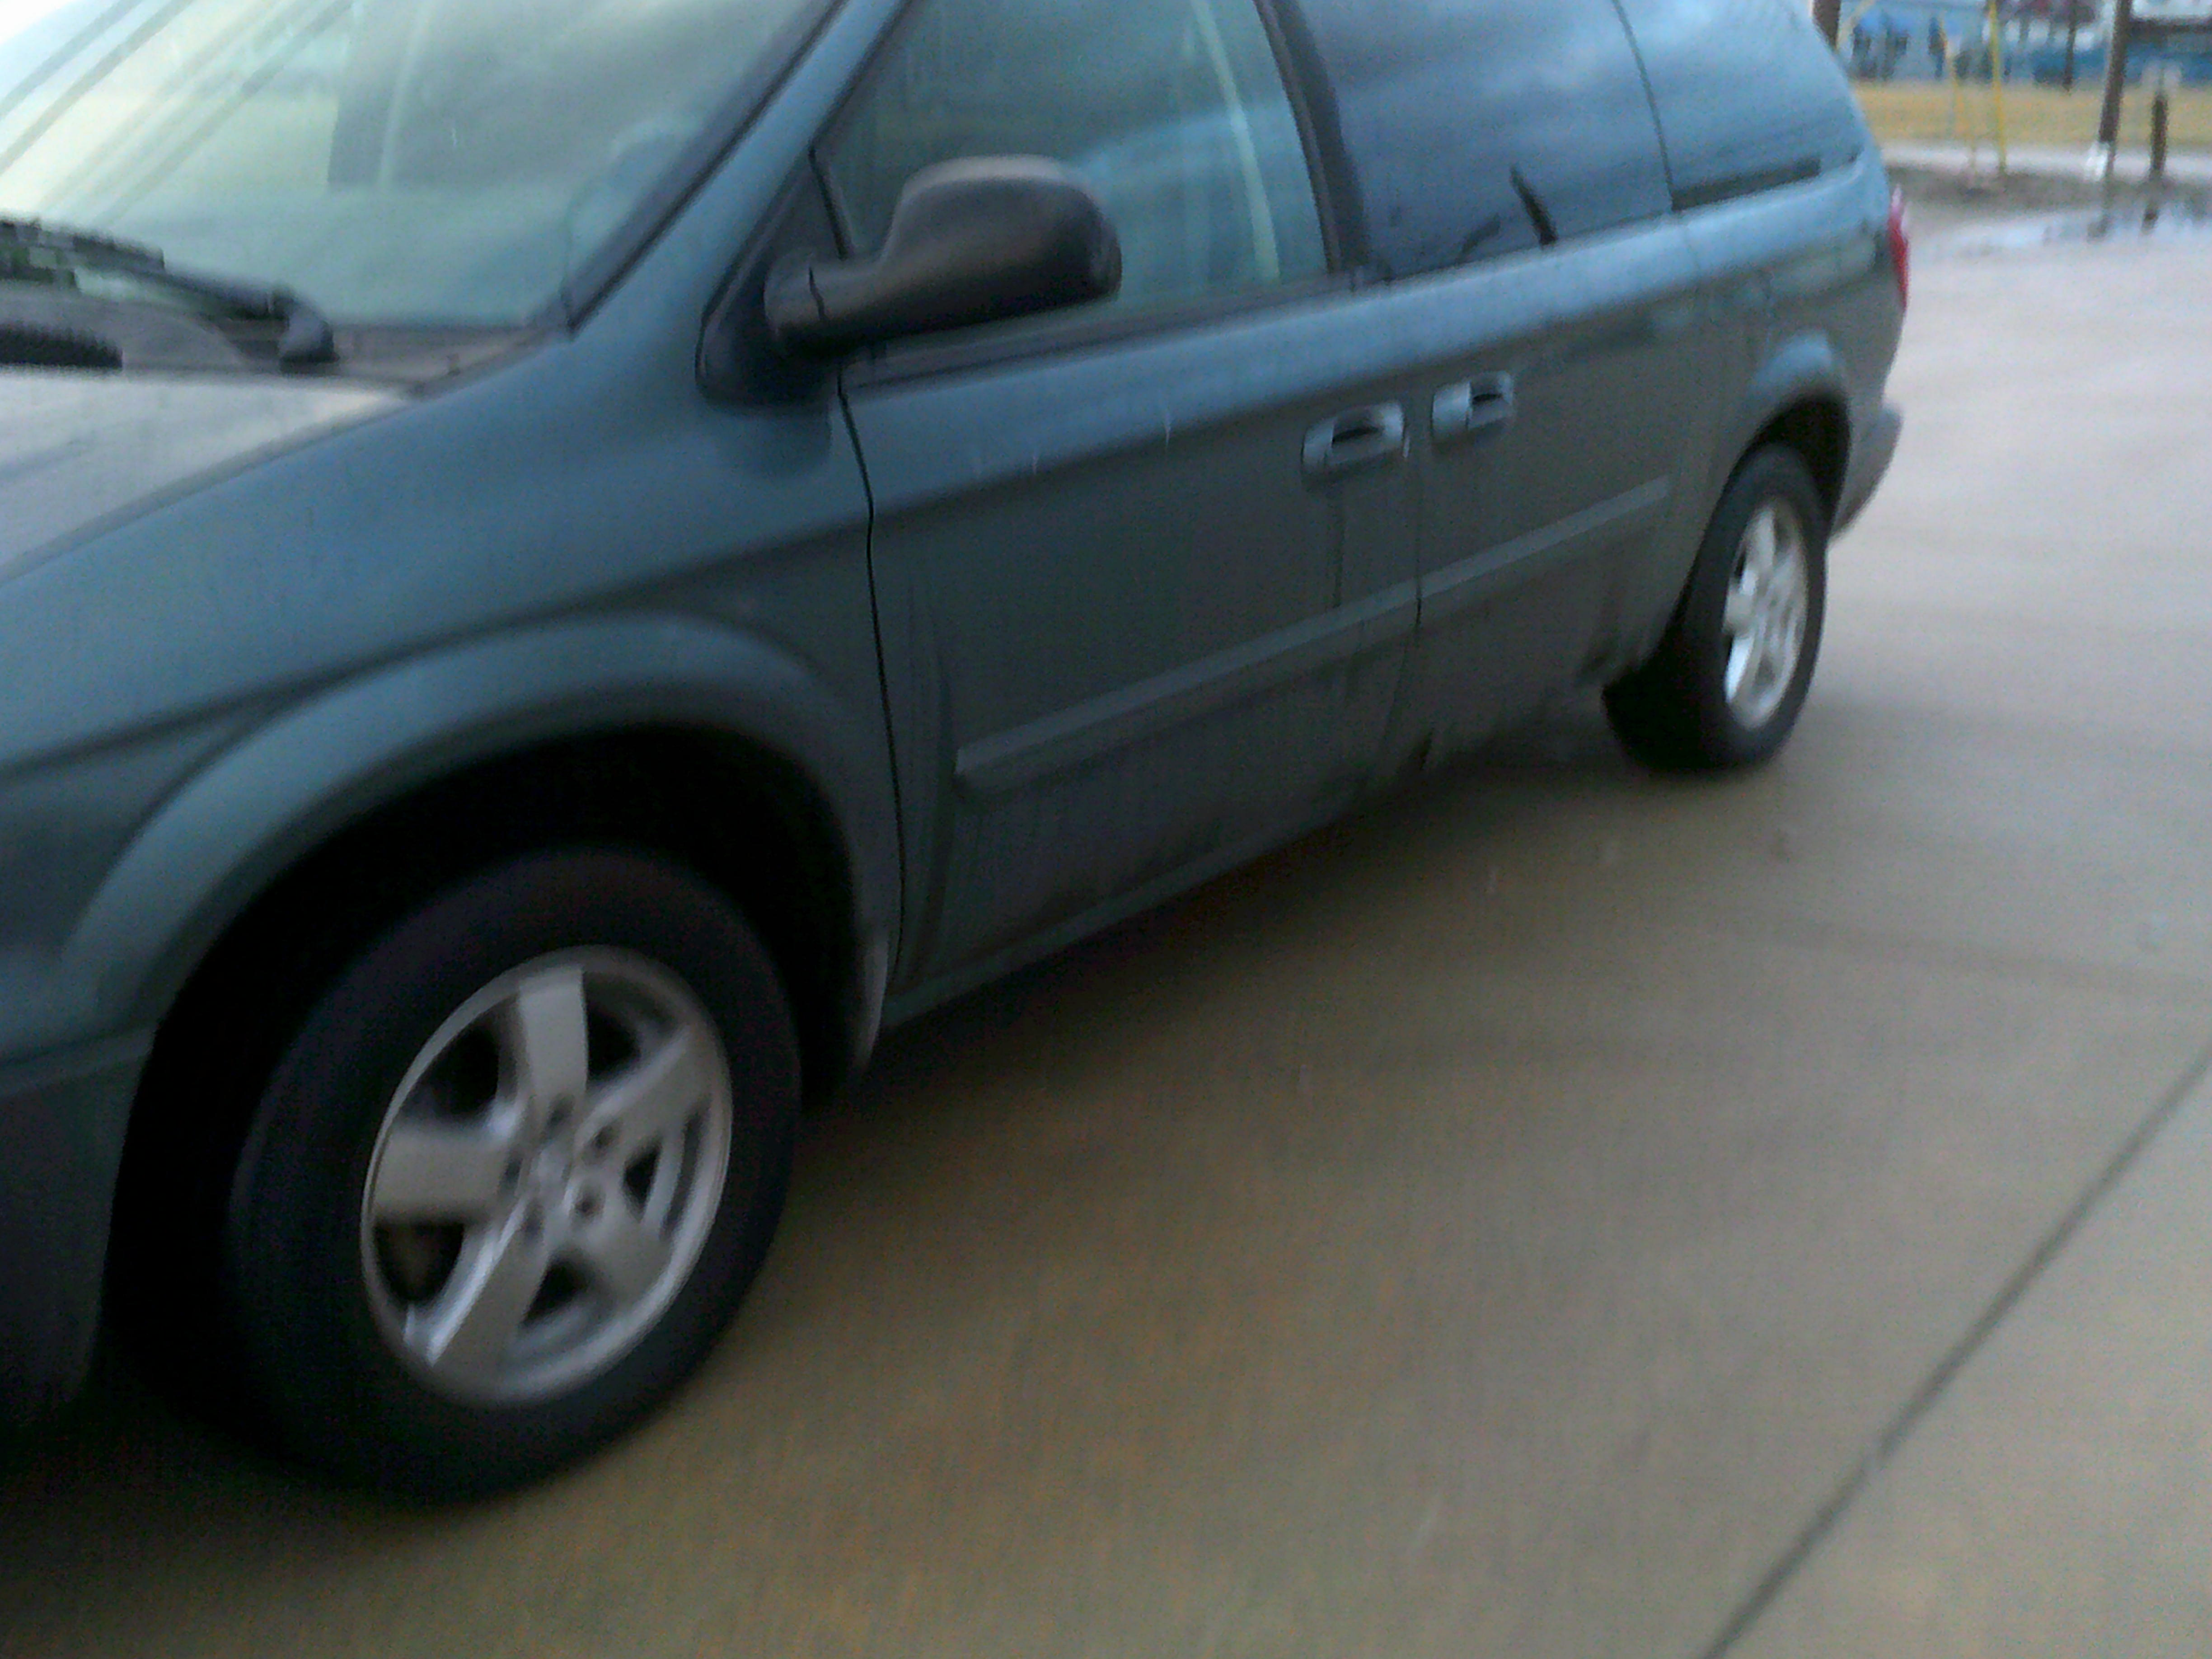 Dodge Caravan For Sale at Economy Car Car Trader - Used Autos For ...